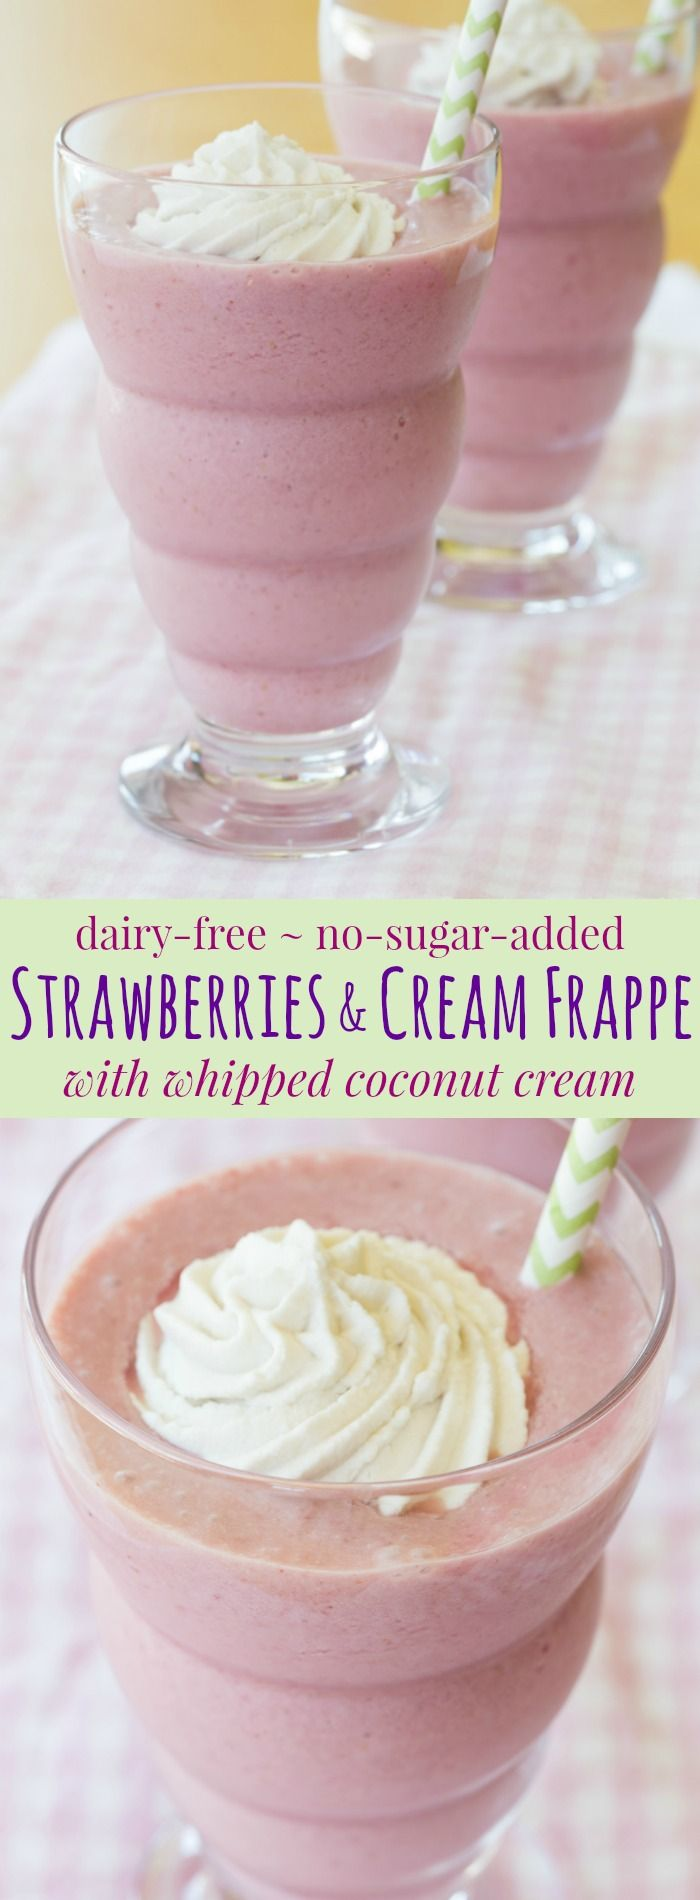 Strawberries and Cream Frappe with Whipped Coconut Cream